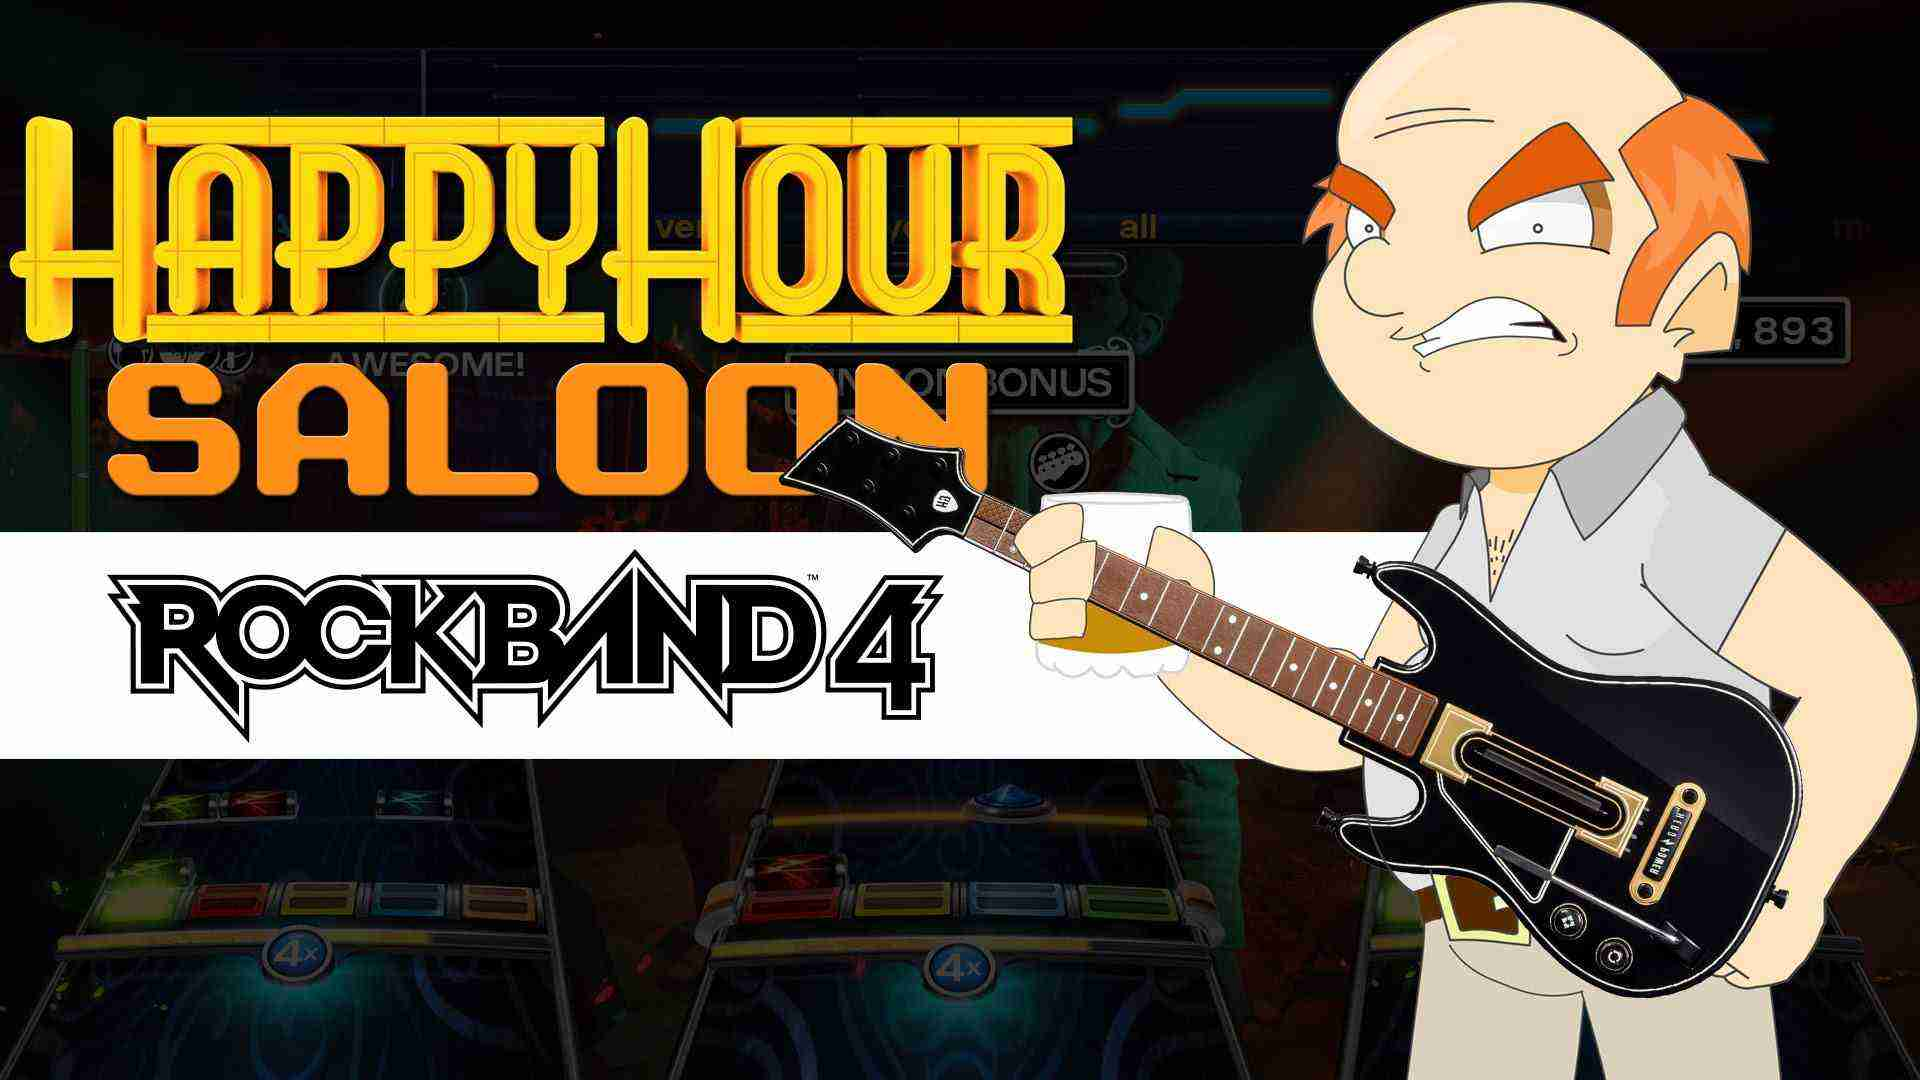 Lou and Derek Play Rock Band 4 – Happy Hour Saloon